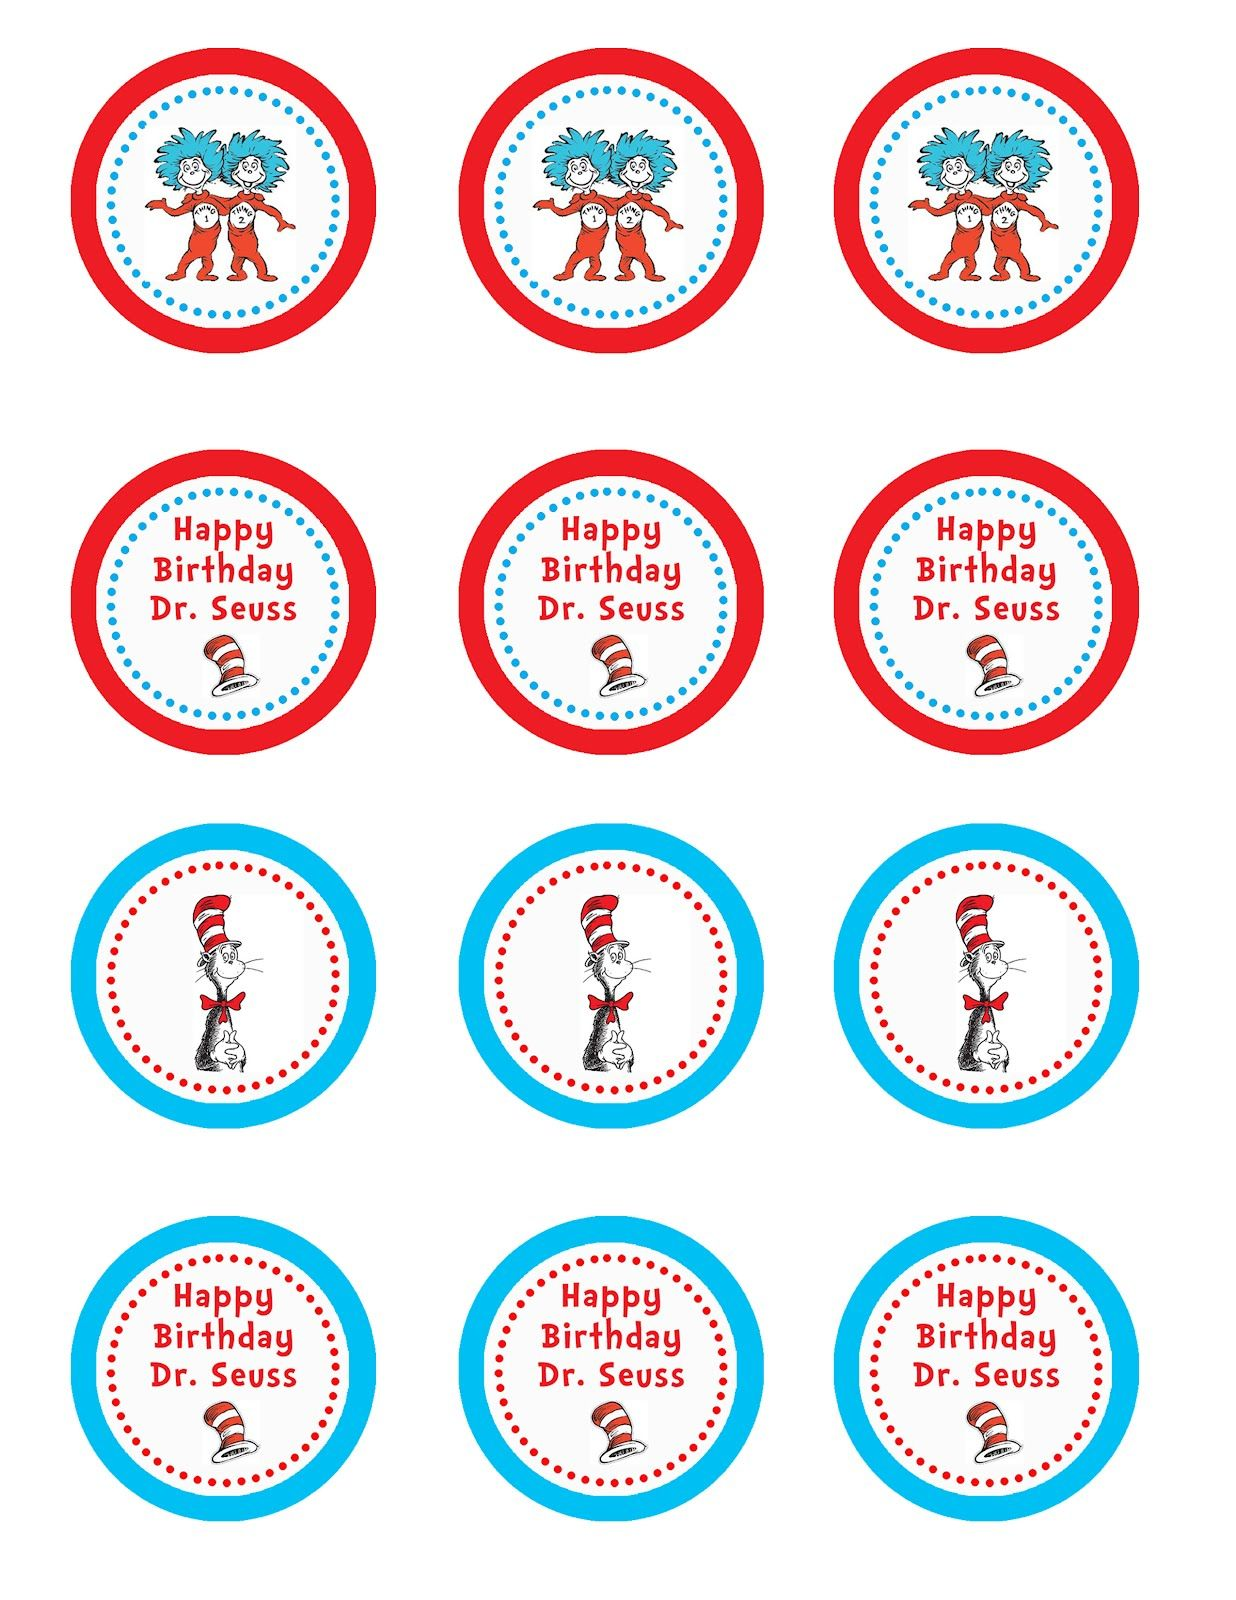 photograph regarding Printable Cupcakes Toppers titled Totally free Dr Seuss printable cupcake toppers occasion strategies for